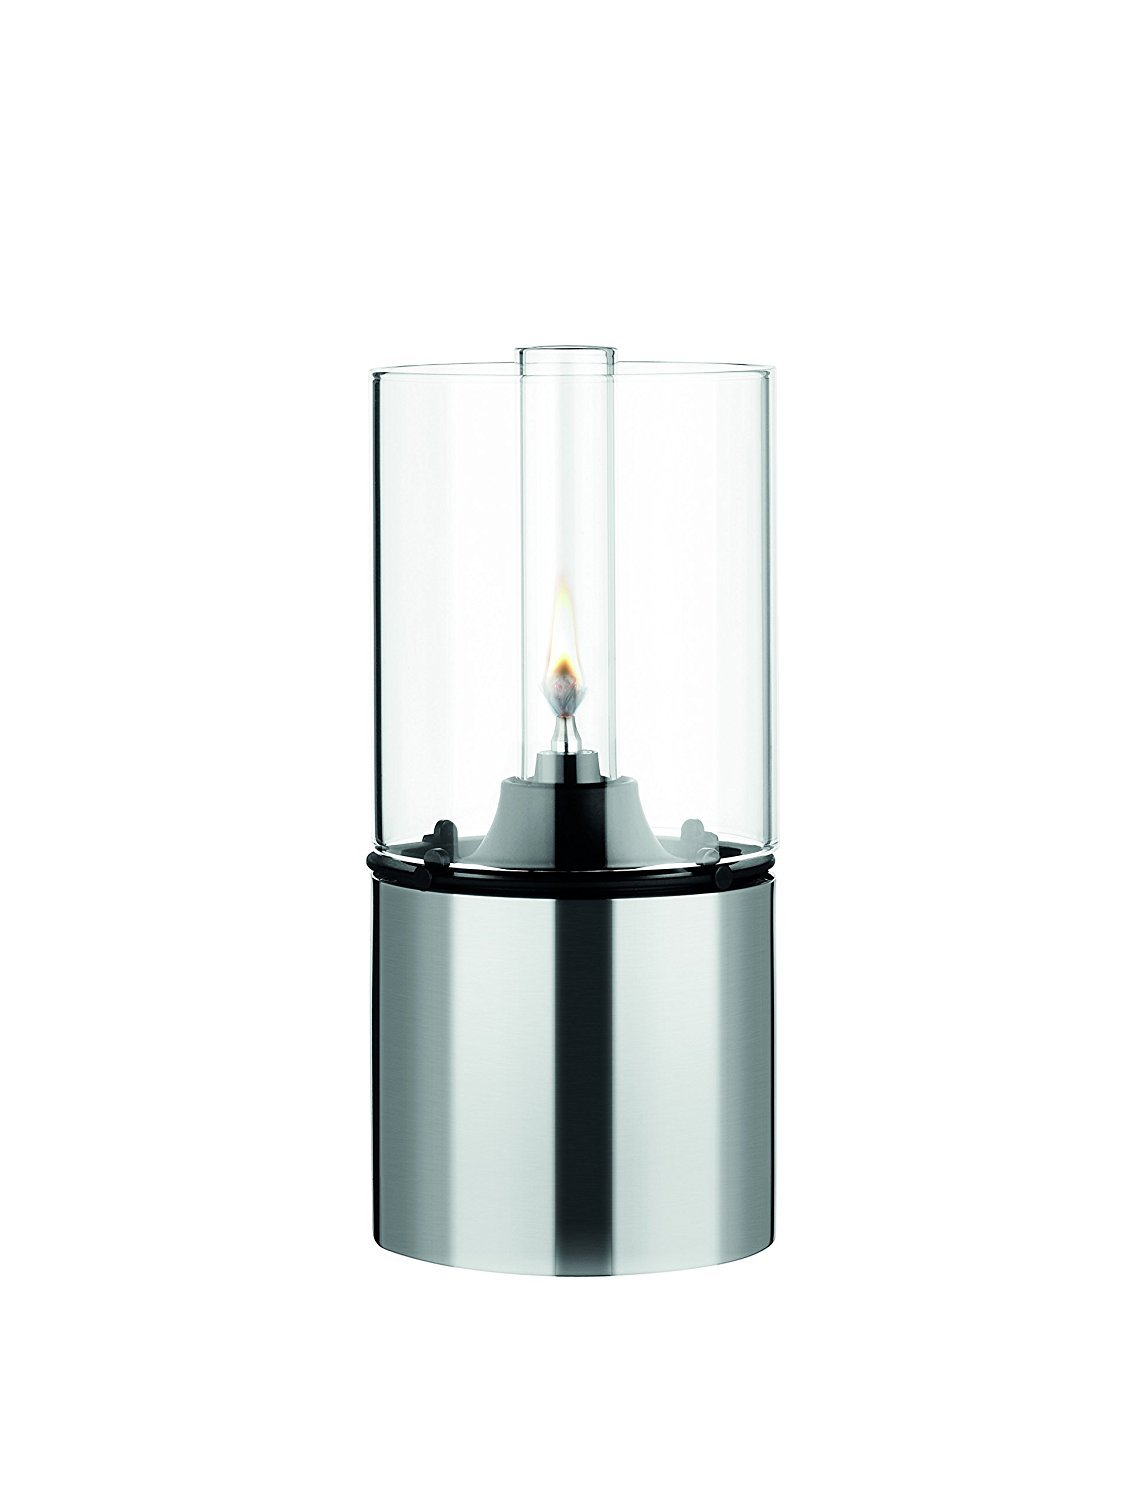 Stelton 1005 Classic Clear Glass Oil Lamp